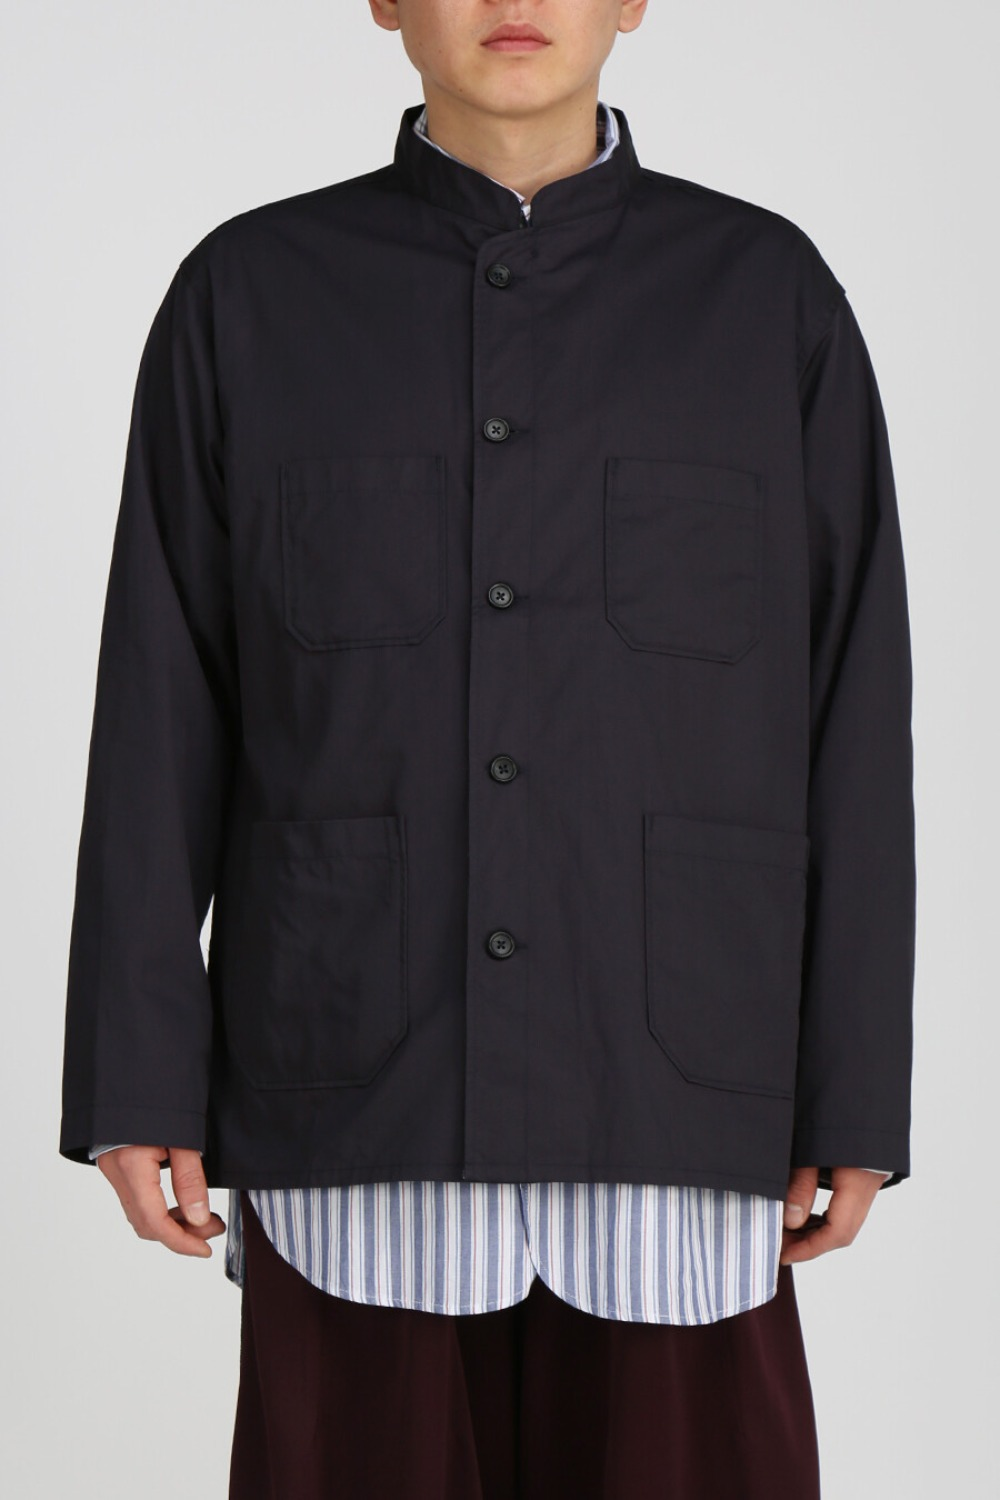 DAYTON SHIRT HIGHCOUNT TWILL DARK NAVY